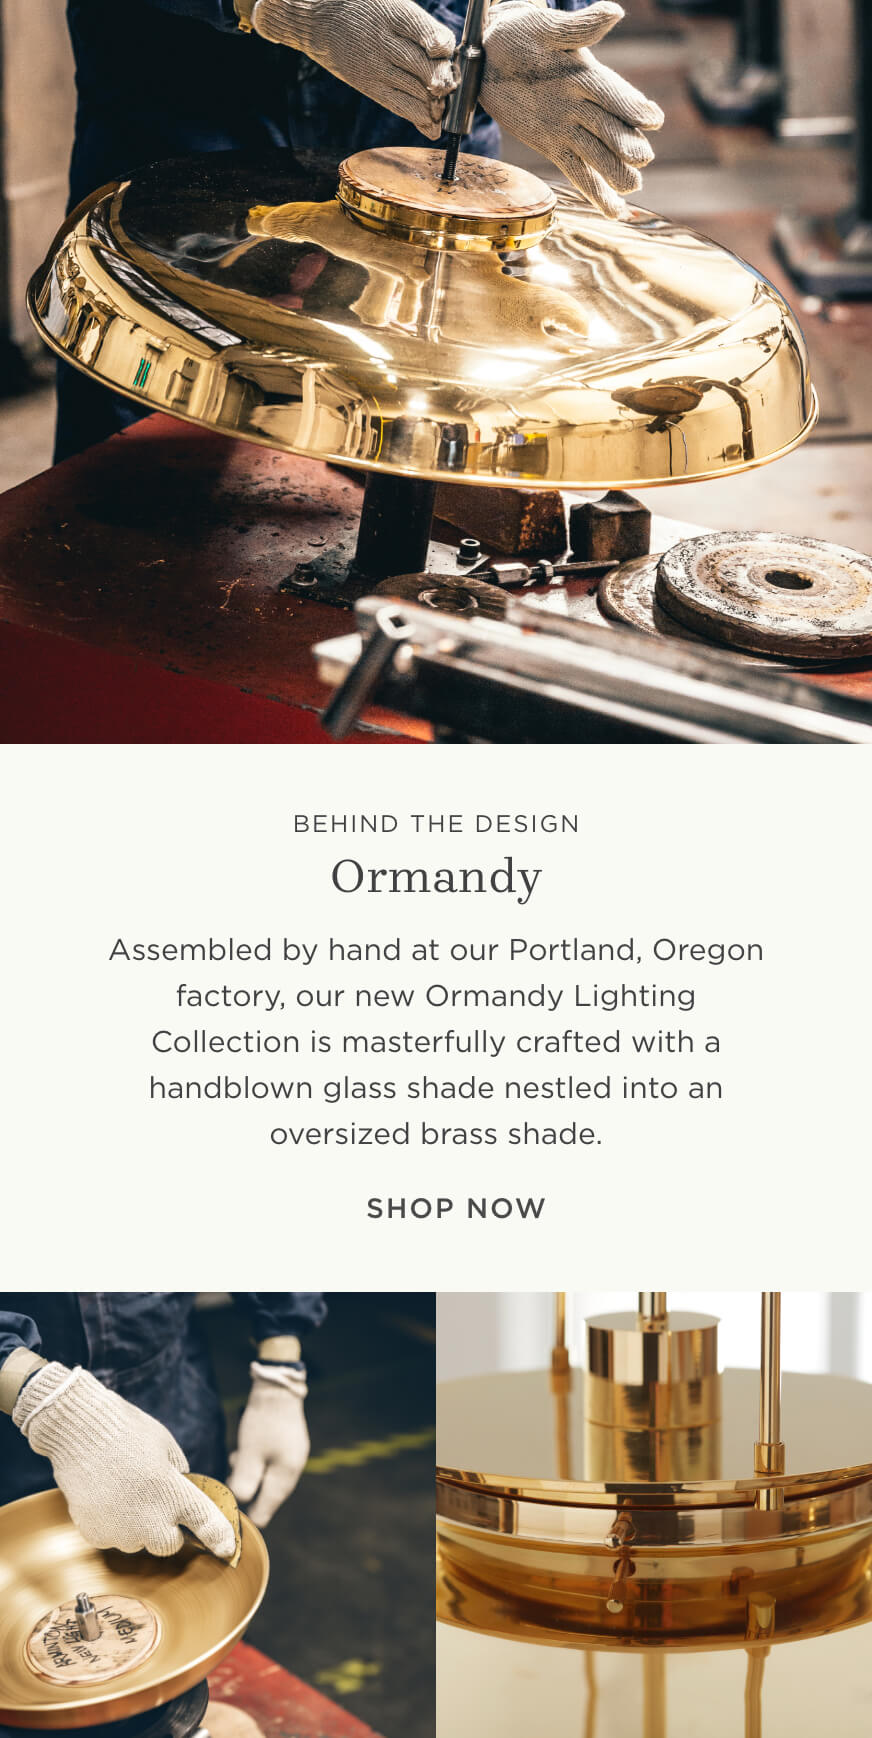 Behind The Design: Ormandy